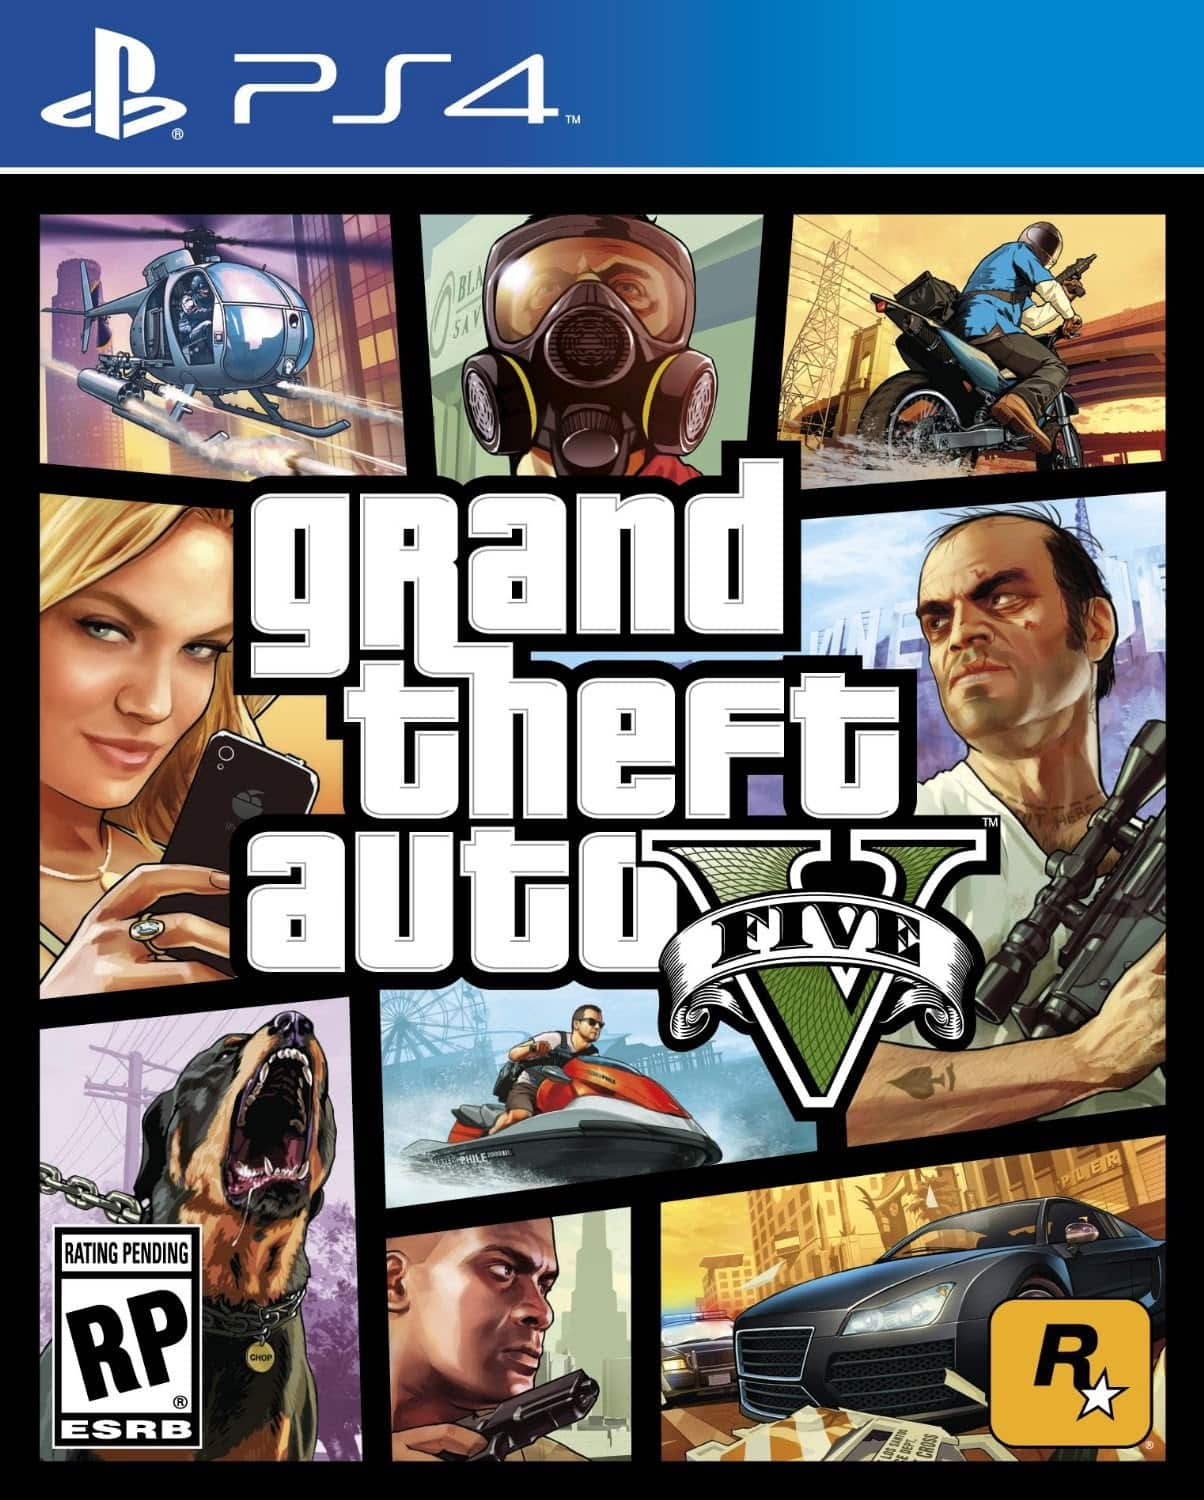 Best Buy 50% Game Trade-in: Trade-in Value for Grand Theft Auto V (PS4 or Xbox One) $37.50 GC - GCU Members Additional 10%